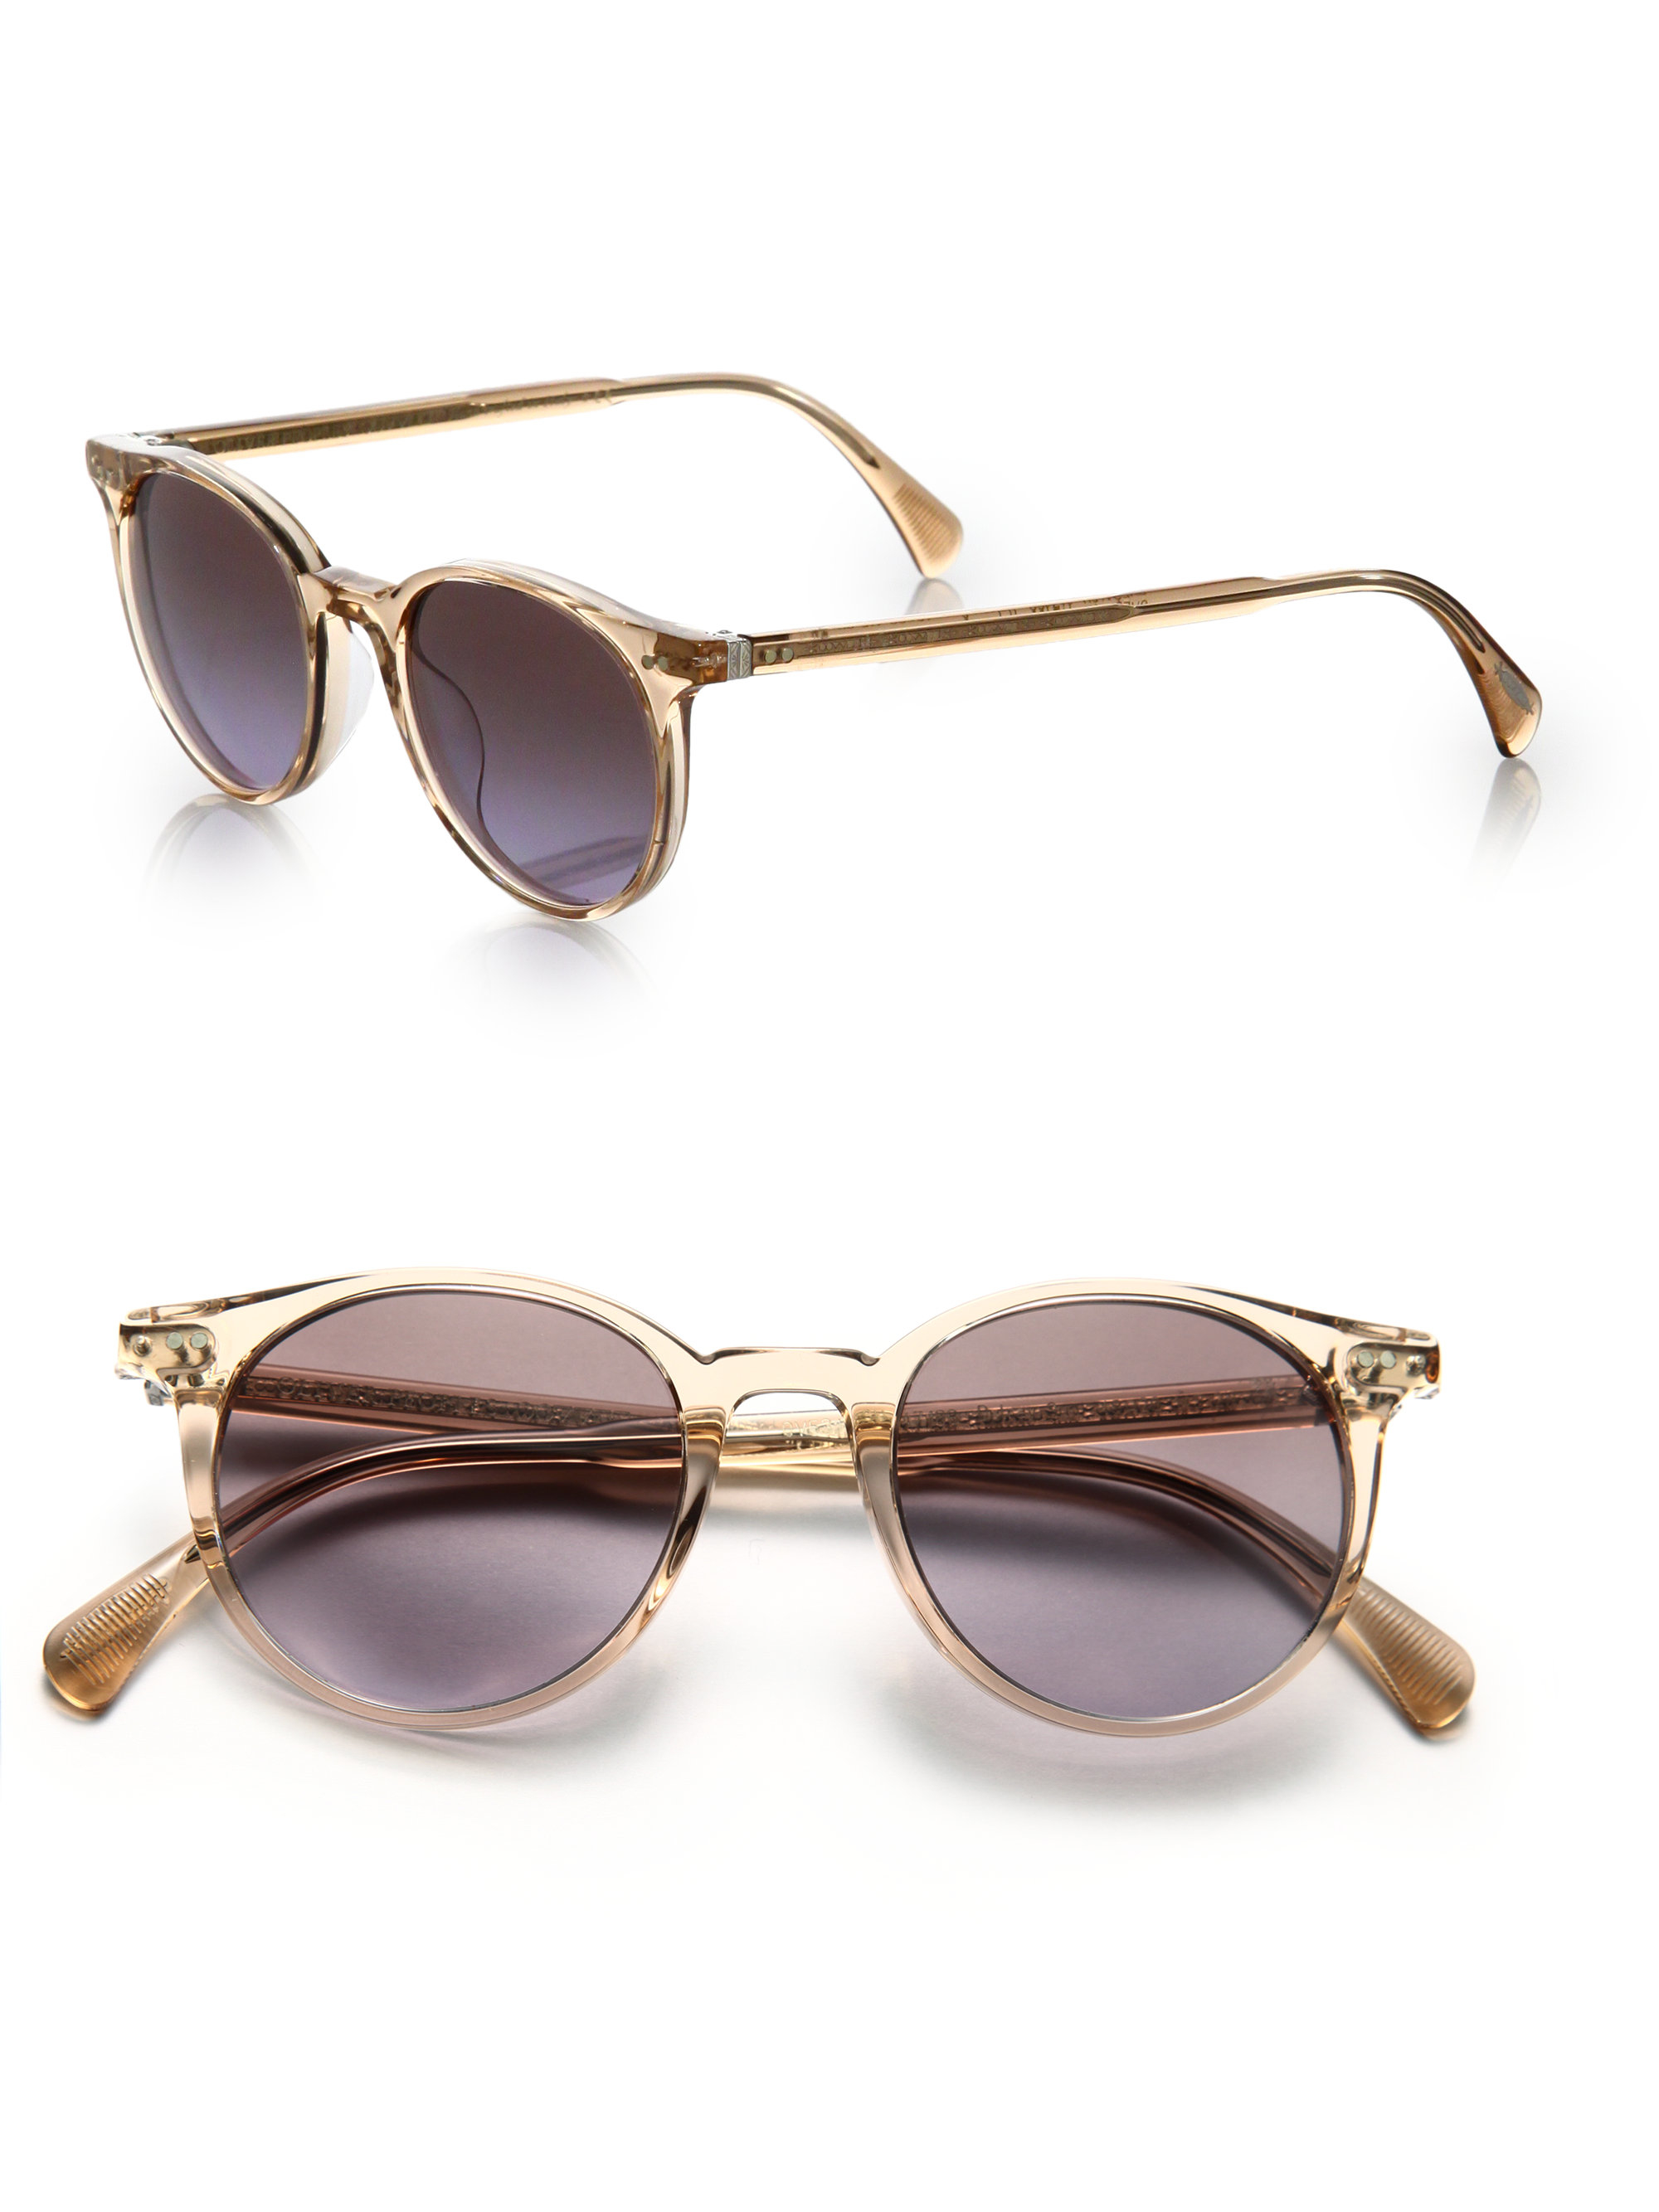 7cd627e35b Lyst - Oliver Peoples Delray 48mm Round Sunglasses in Metallic